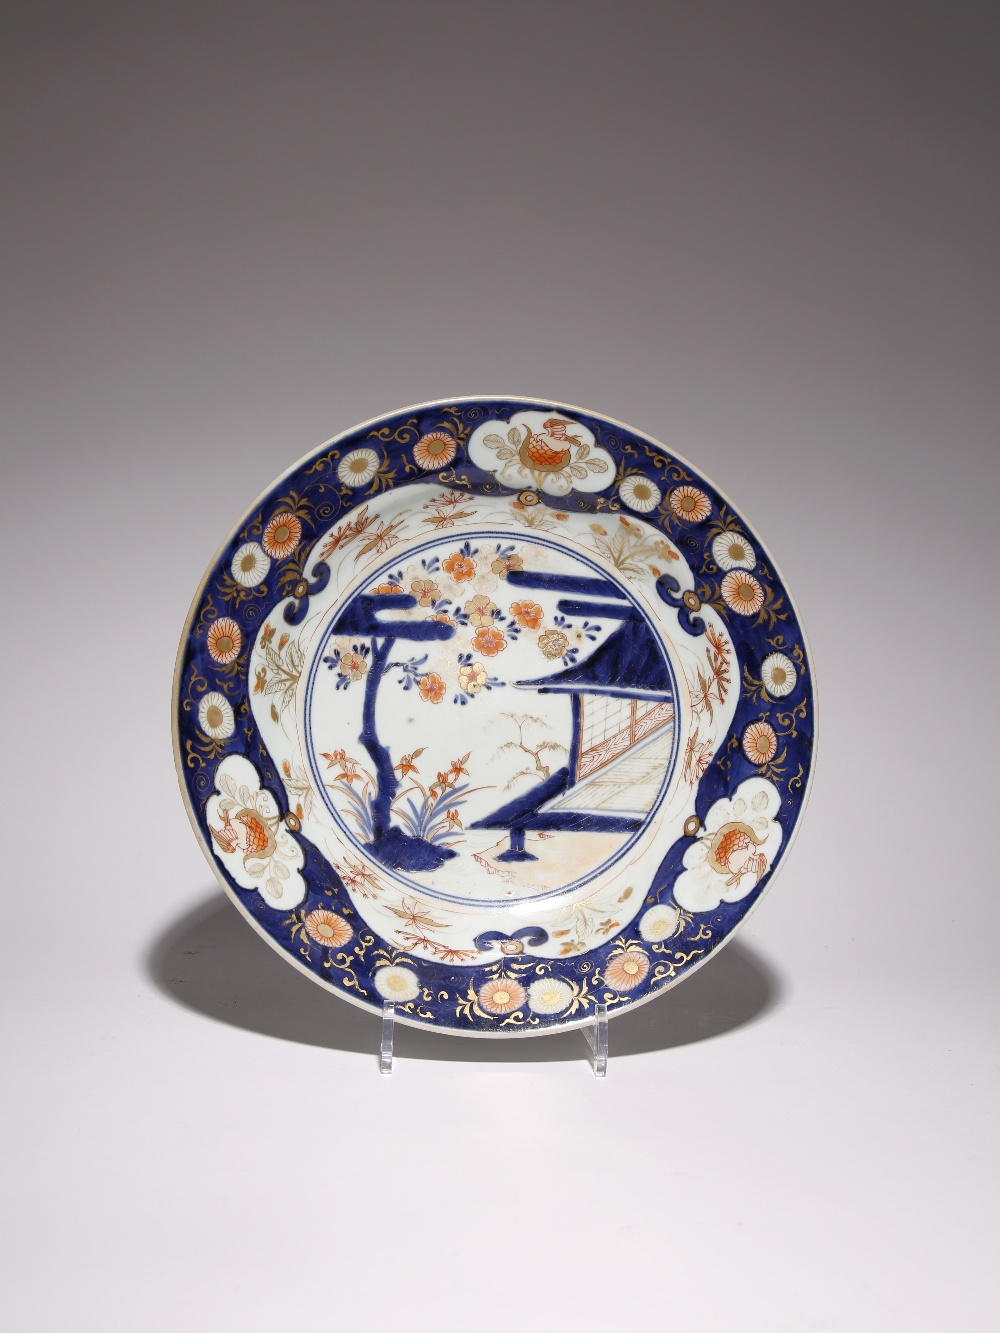 A JAPANESE IMARI DISH EDO PERIOD, LATE 17TH/EARLY 18TH CENTURY Typically decorated in underglaze